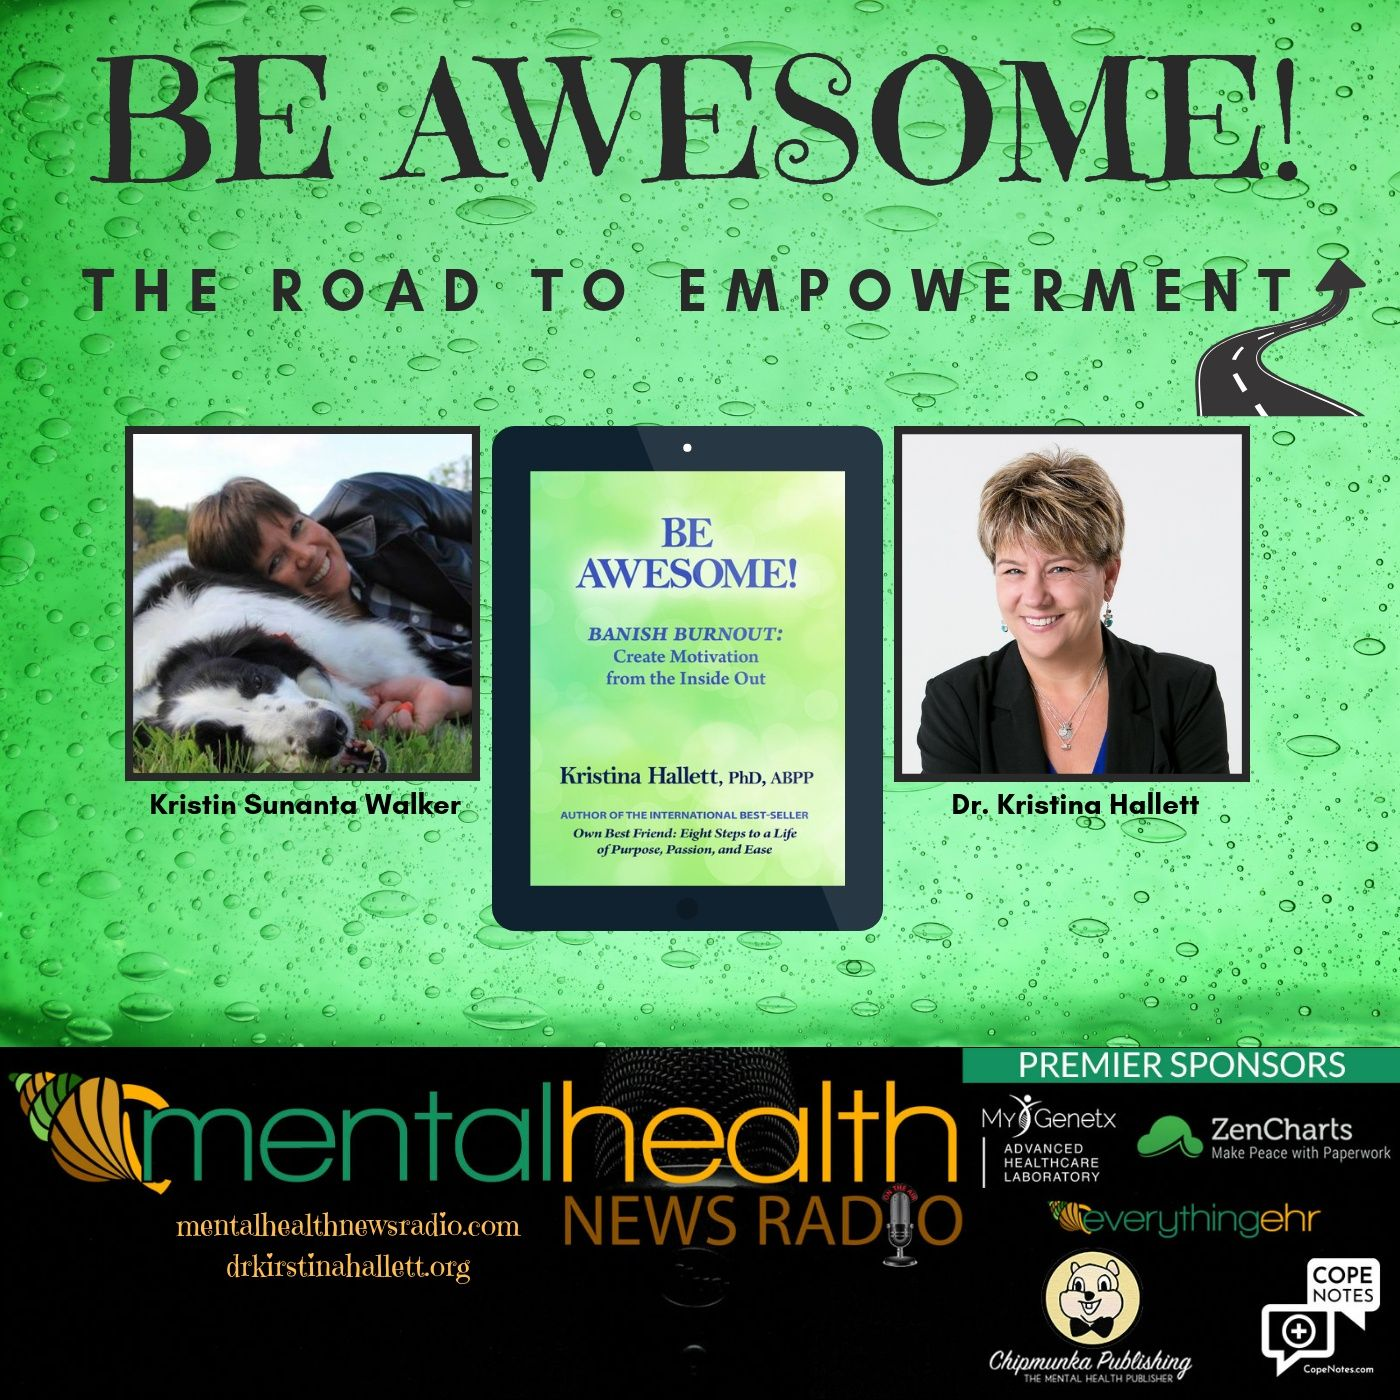 Mental Health News Radio - Be Awesome: The Road to Empowerment with Dr. Kristina Hallett